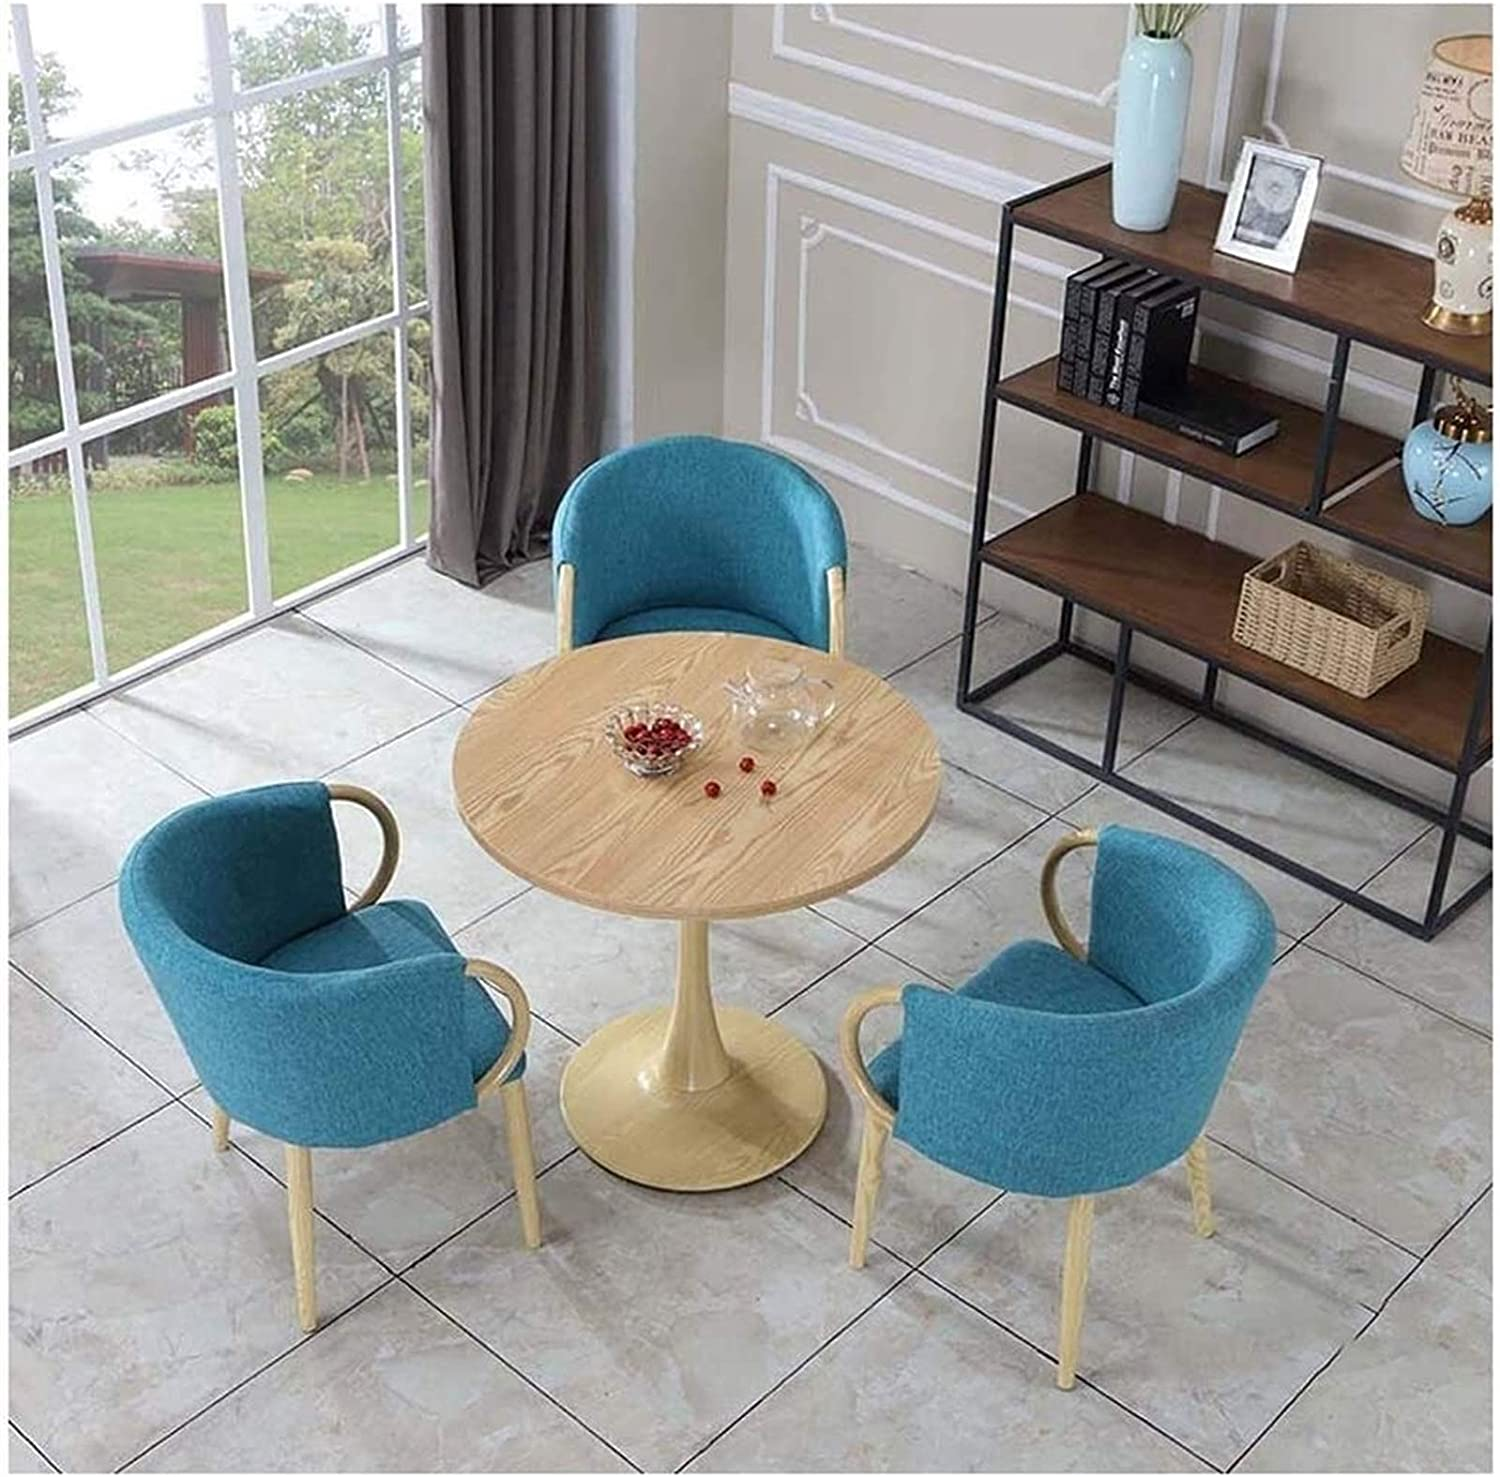 ZHANGXX Round Dining Table Max 76% OFF [Alternative dealer] and Set Nordic Chair Ta